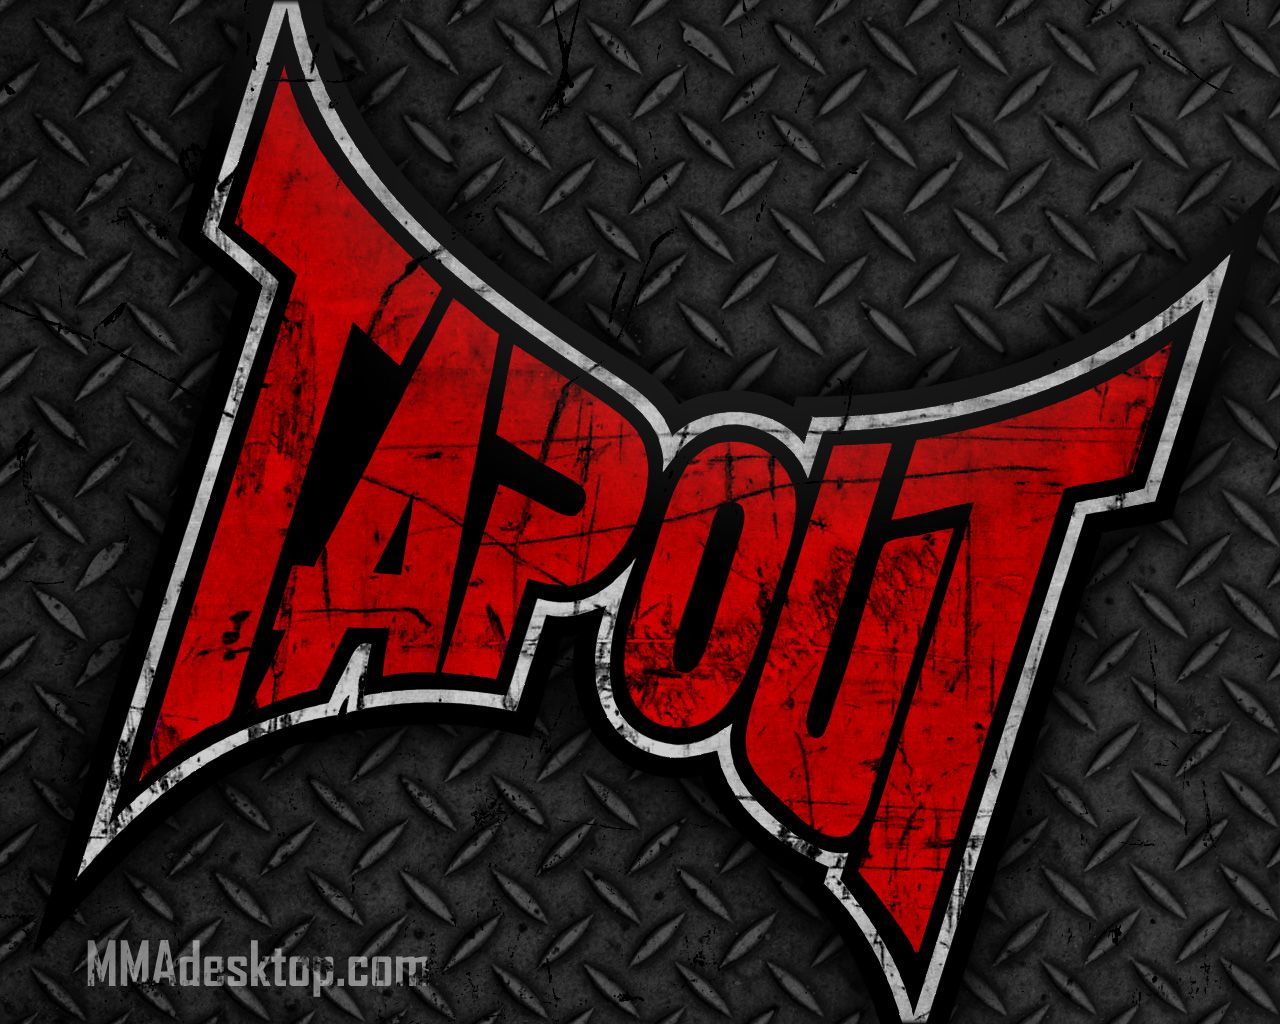 Mma Logo Wallpapers 20 High Quality Mma Mma Workout Tapout Xt [ 1024 x 1280 Pixel ]